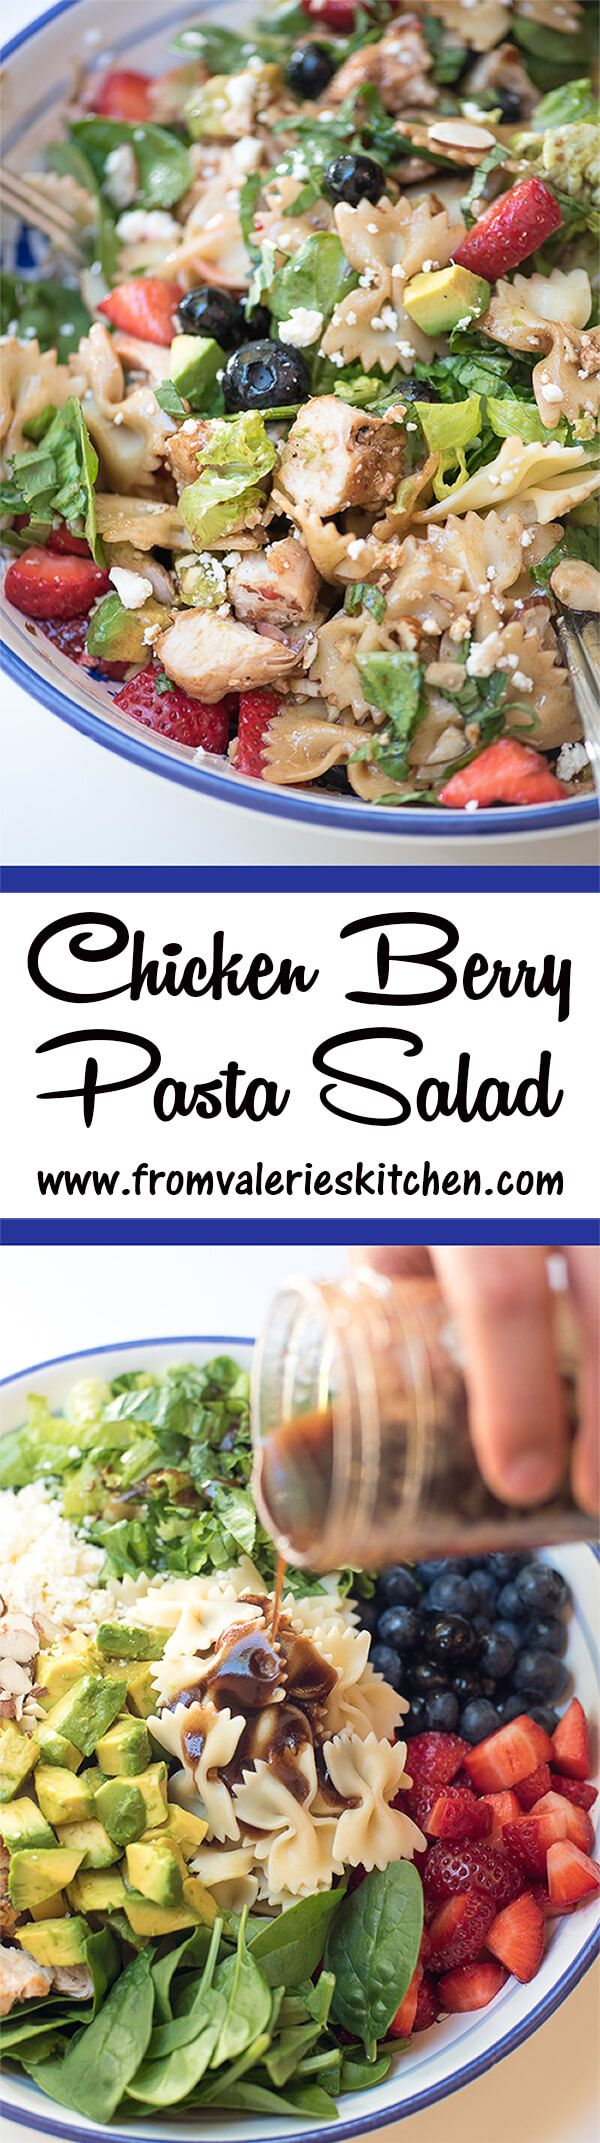 This salad includes a little bit of everything you need for a complete nutritious meal. Fresh greens, gorgeous, ripe berries, lean protein, pasta, and more all dressed in a honey balsamic dressing. Delicious! ~ #freshworks #freshworkscrowd @rubbermaid #ad